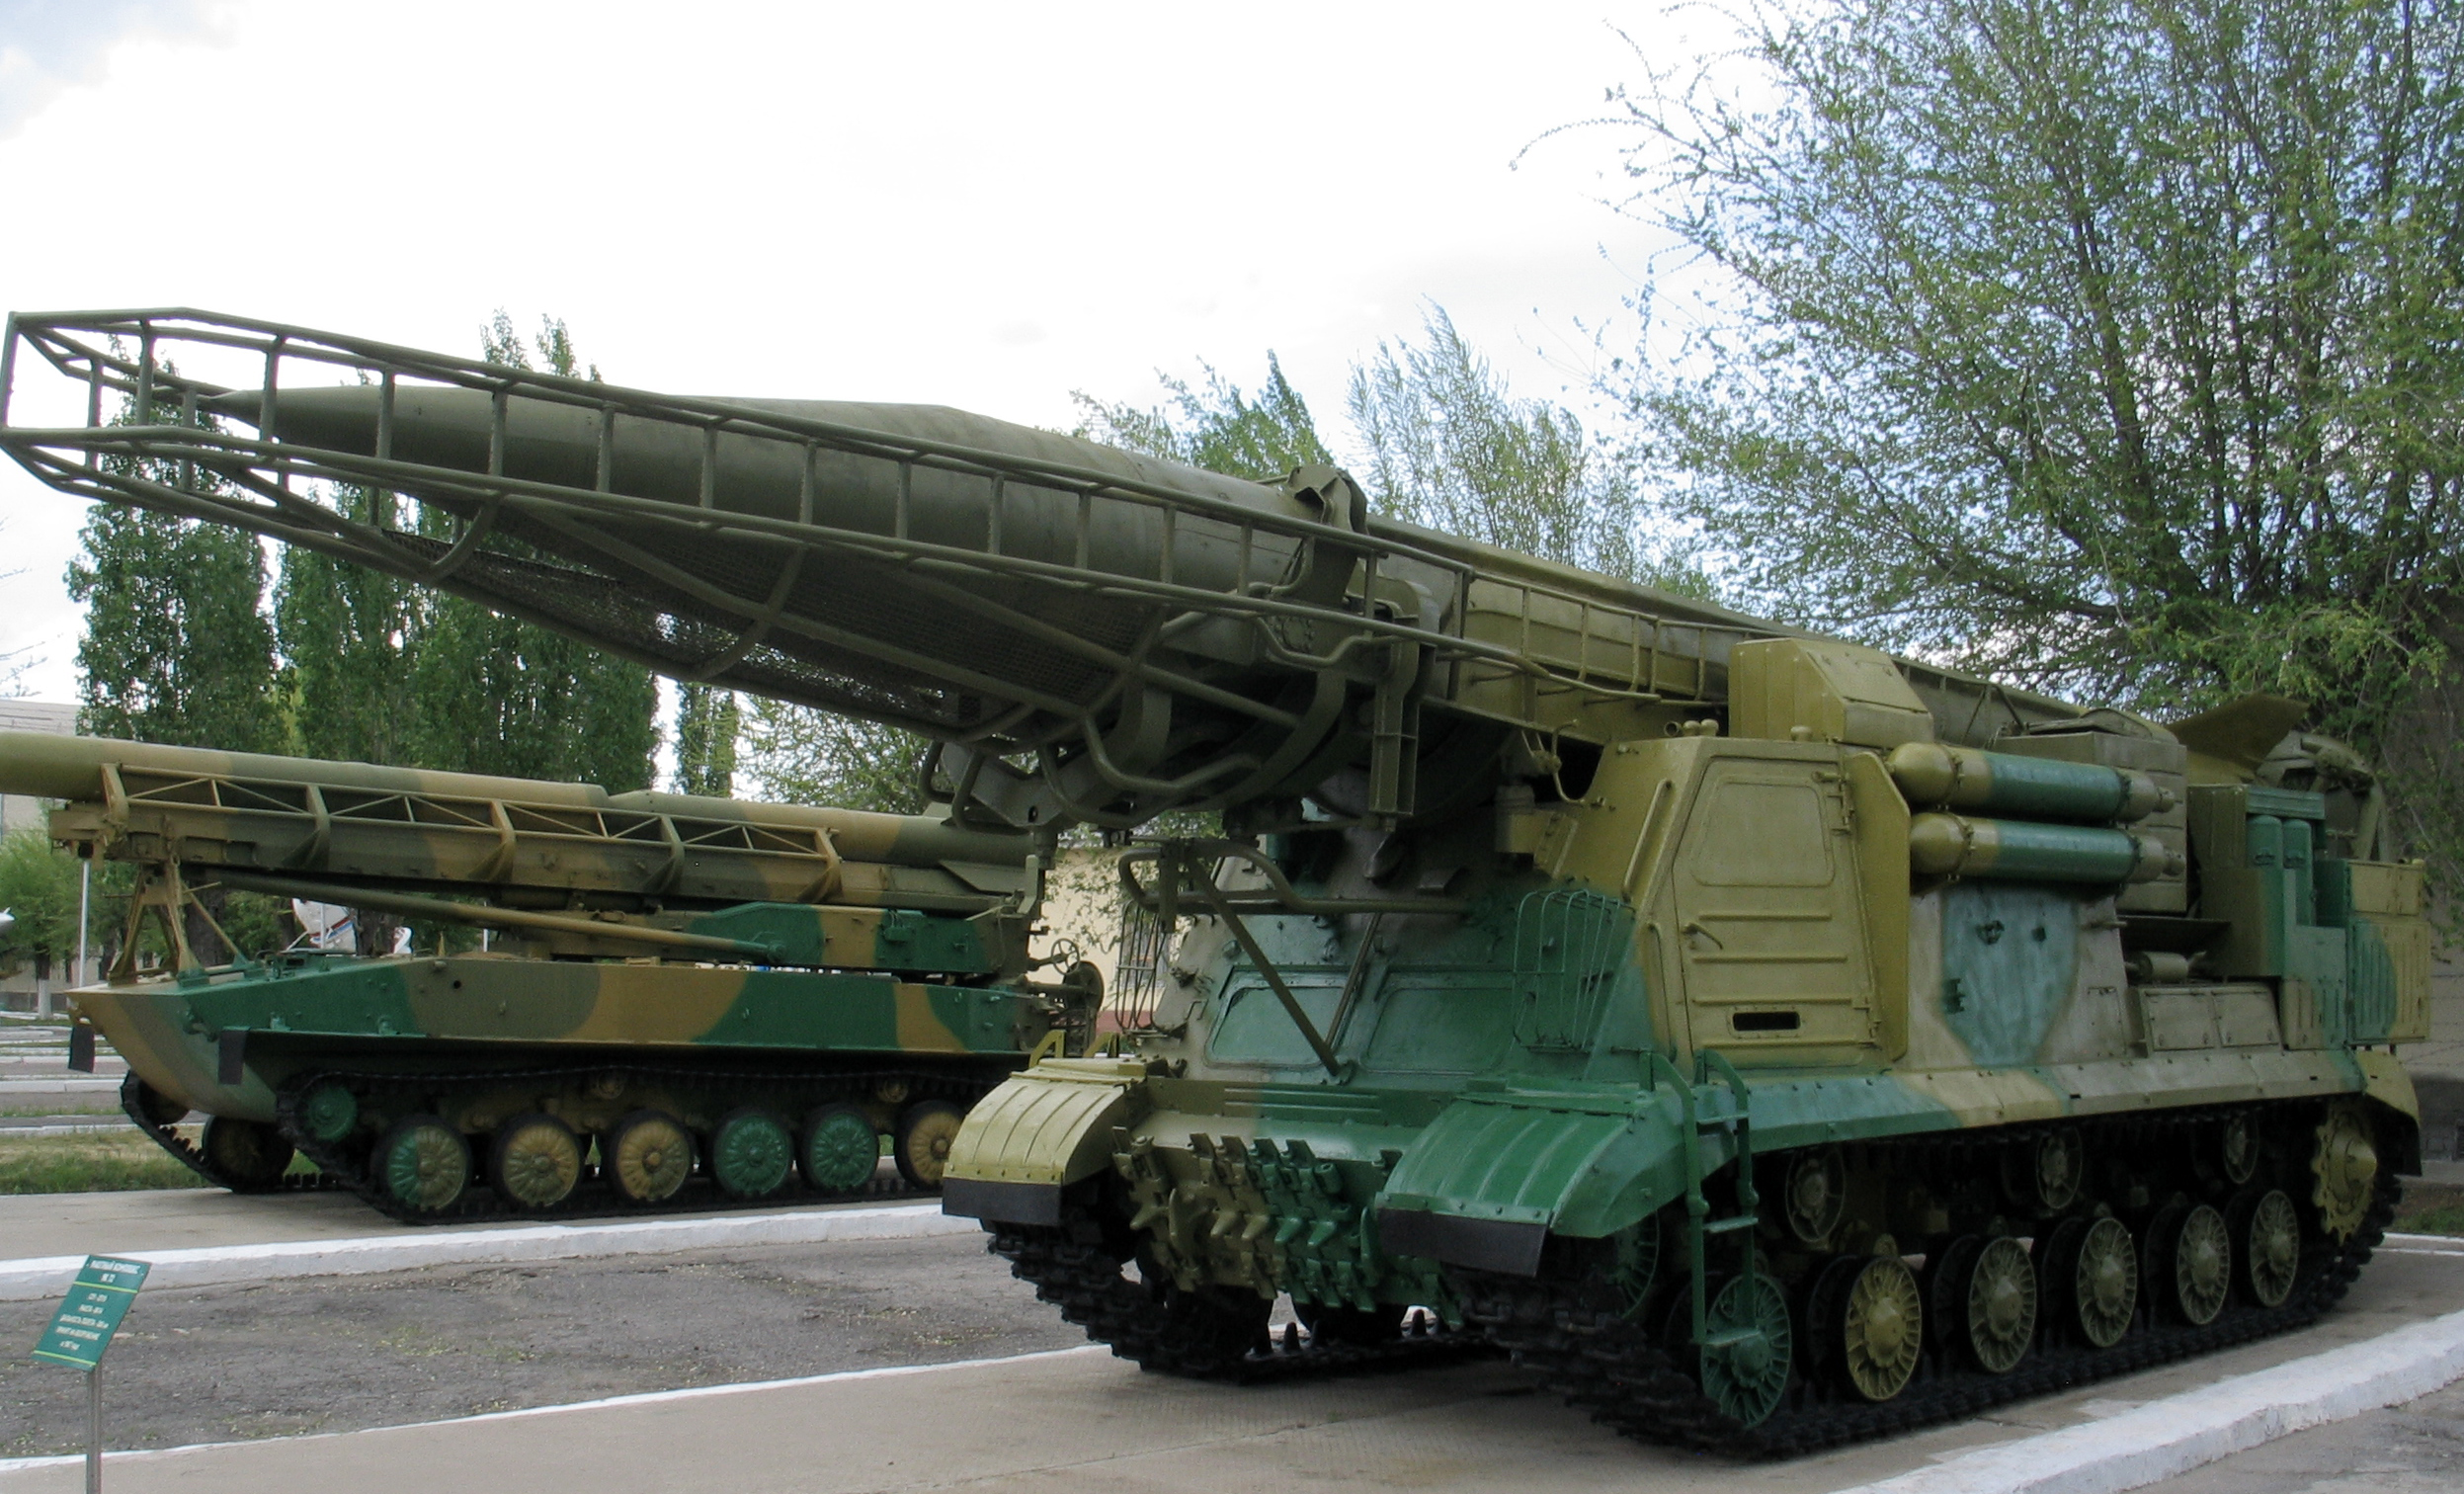 A tracked SCUD transporter-erector-launcher.